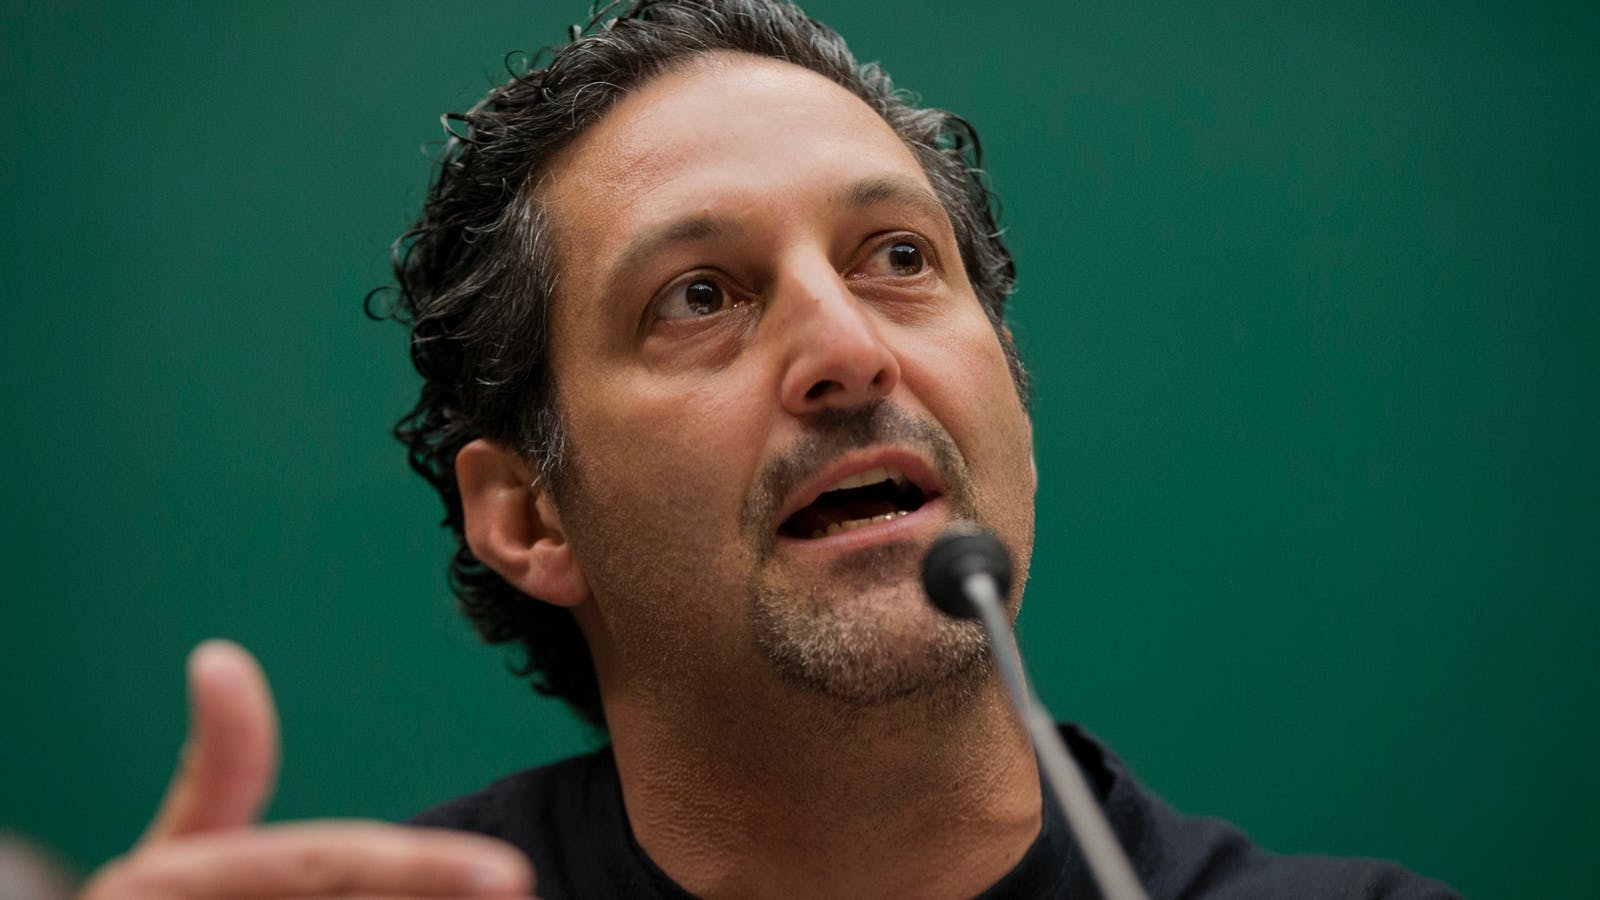 Tenable CEO Amit Yoran testifying on Capitol Hill in April 2016, when he was president of RSA Security. Photo: AP